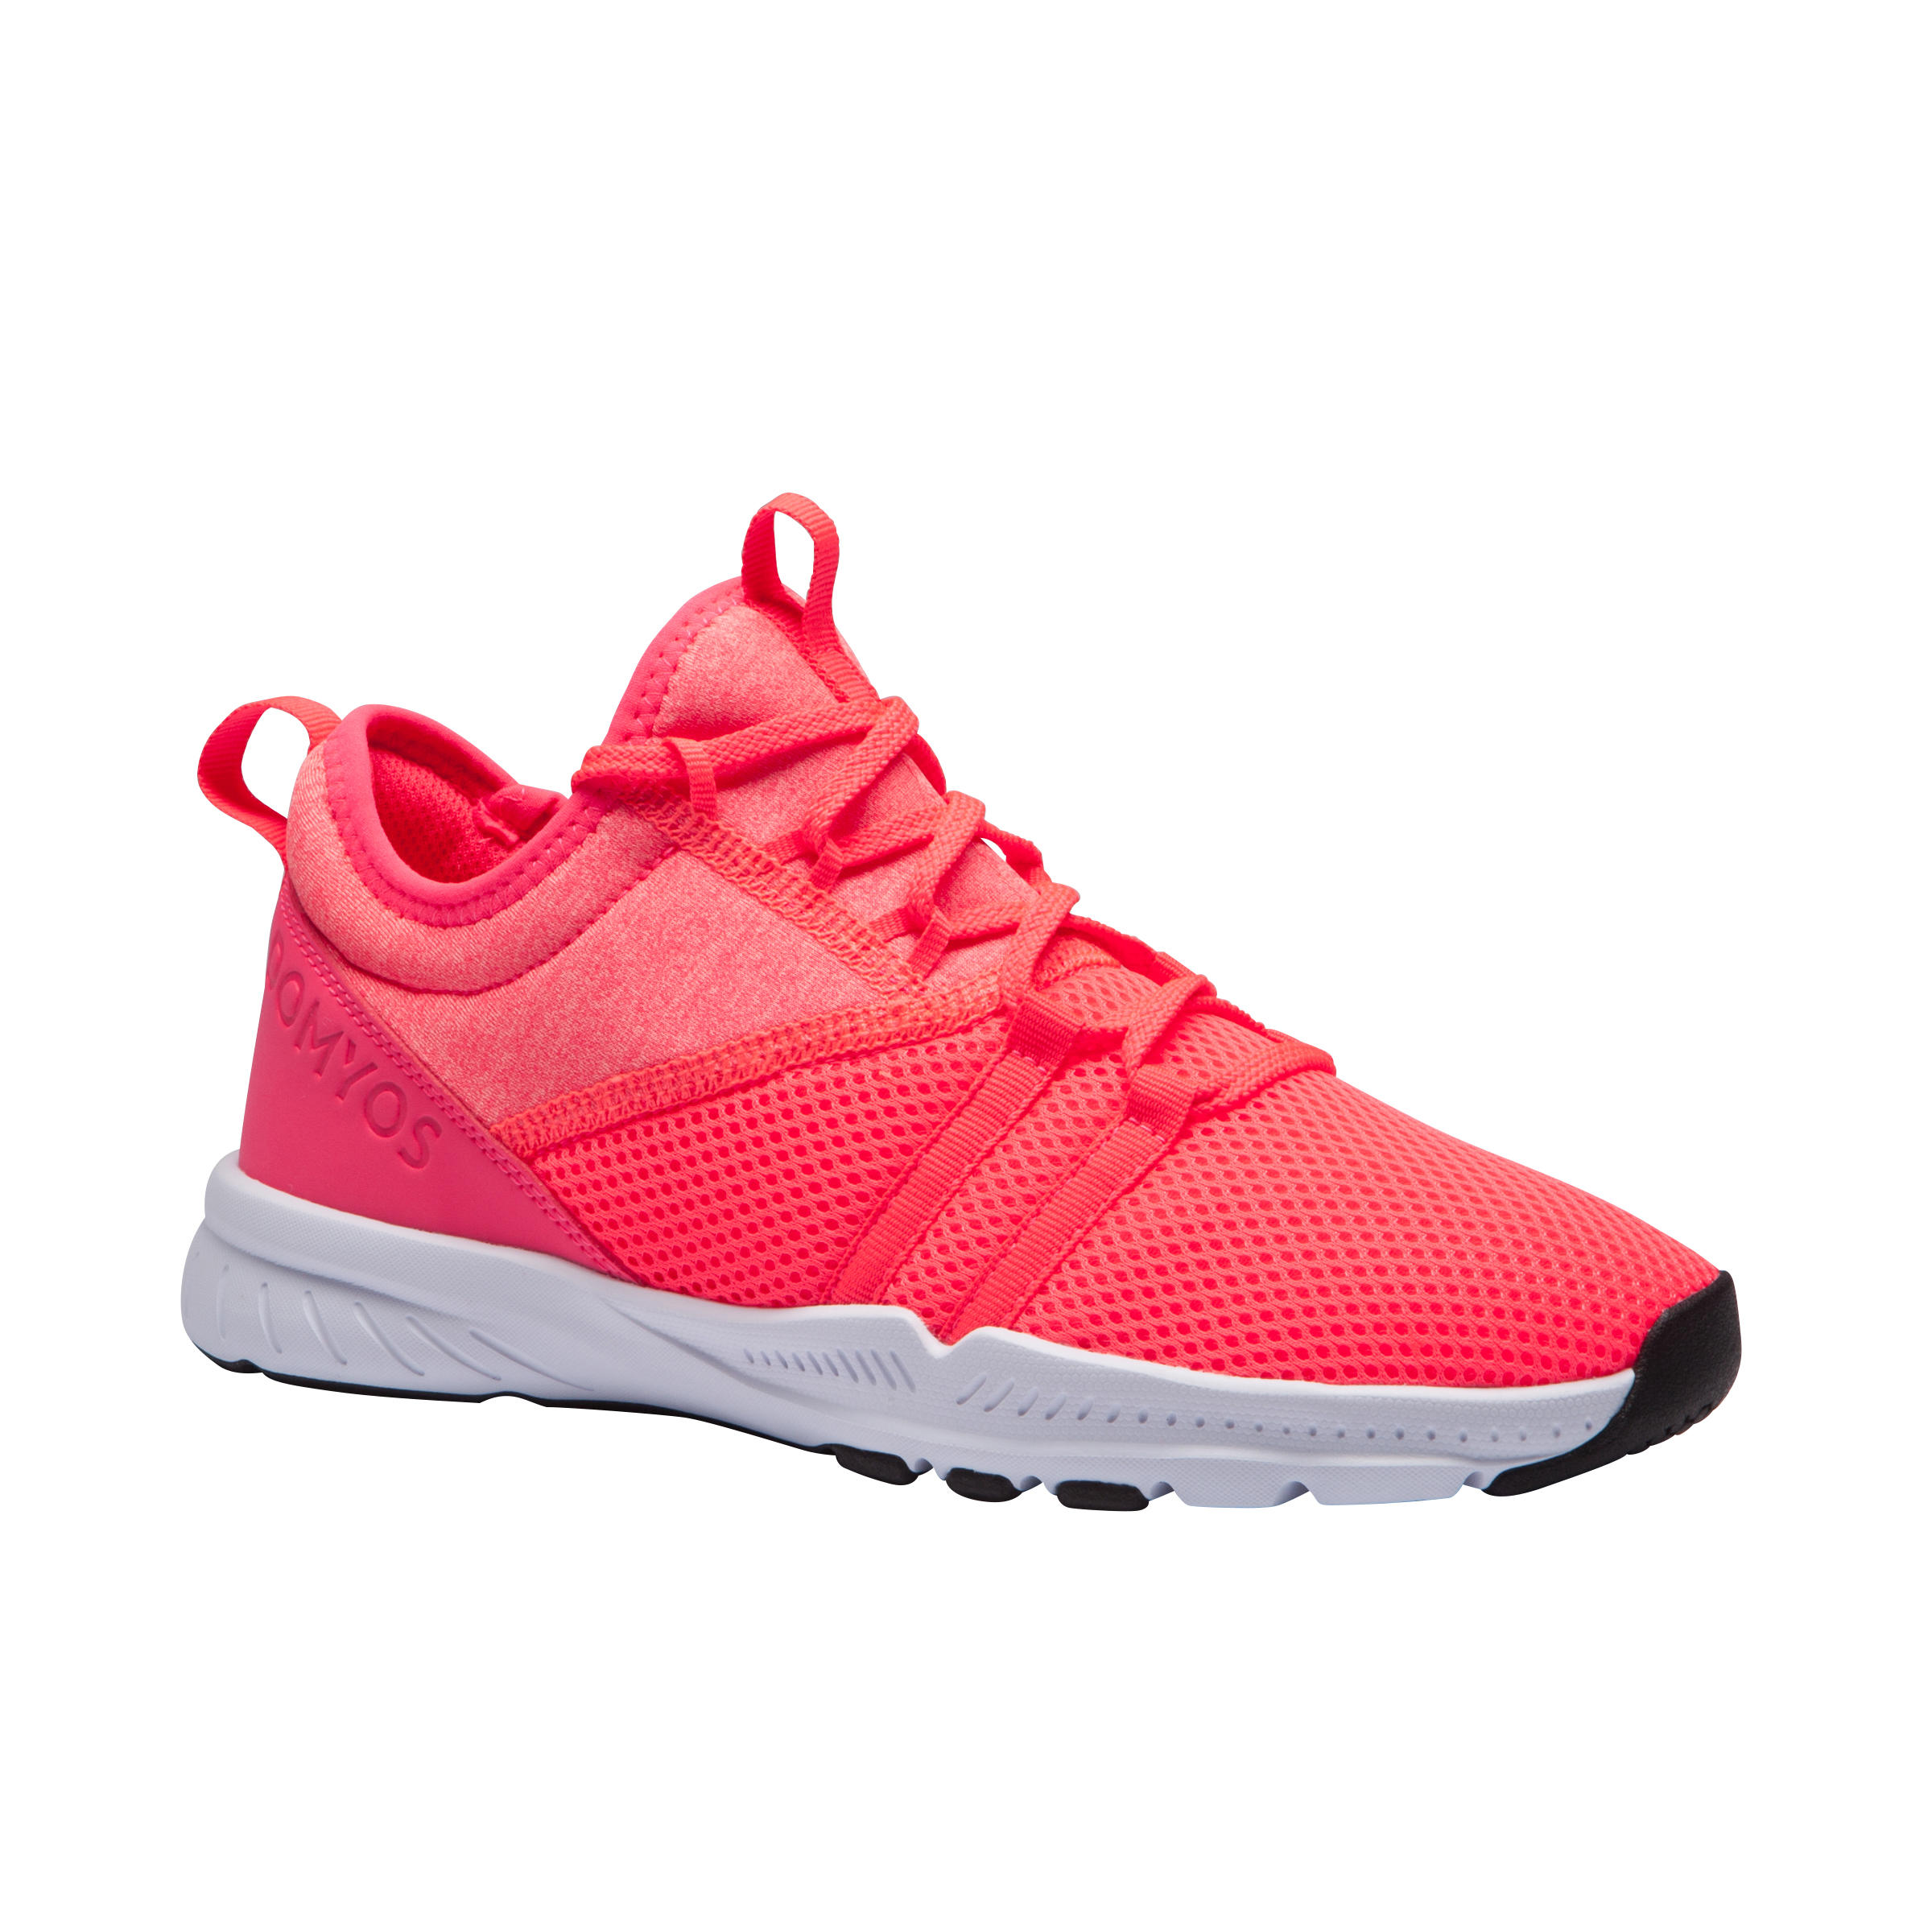 Buy Gym Shoes for Women online at